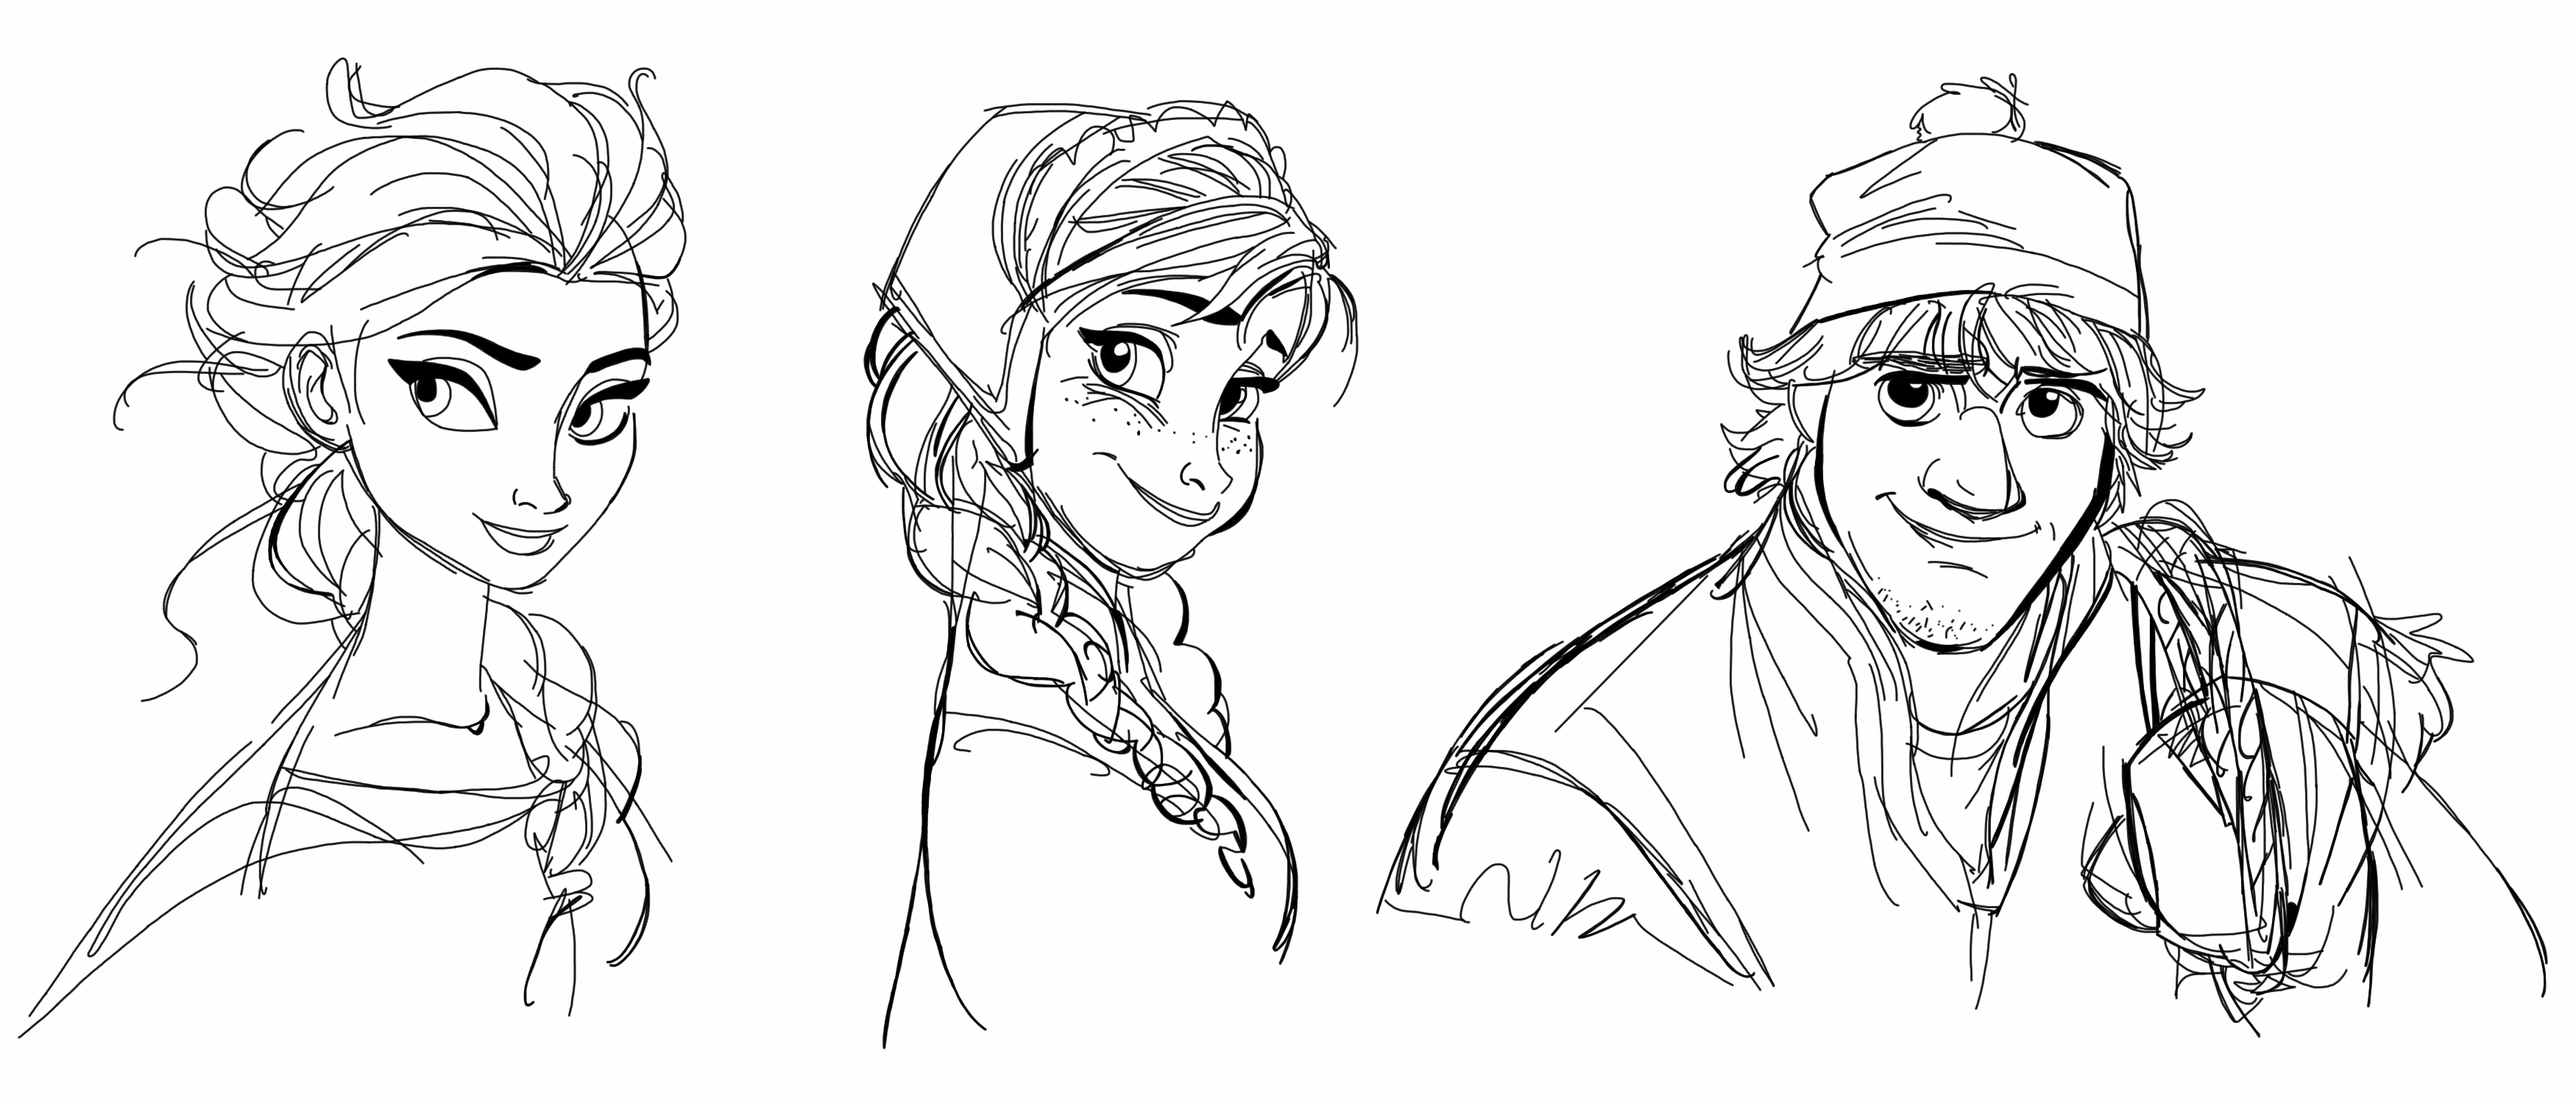 How To Draw Elsa From Frozen For Kids